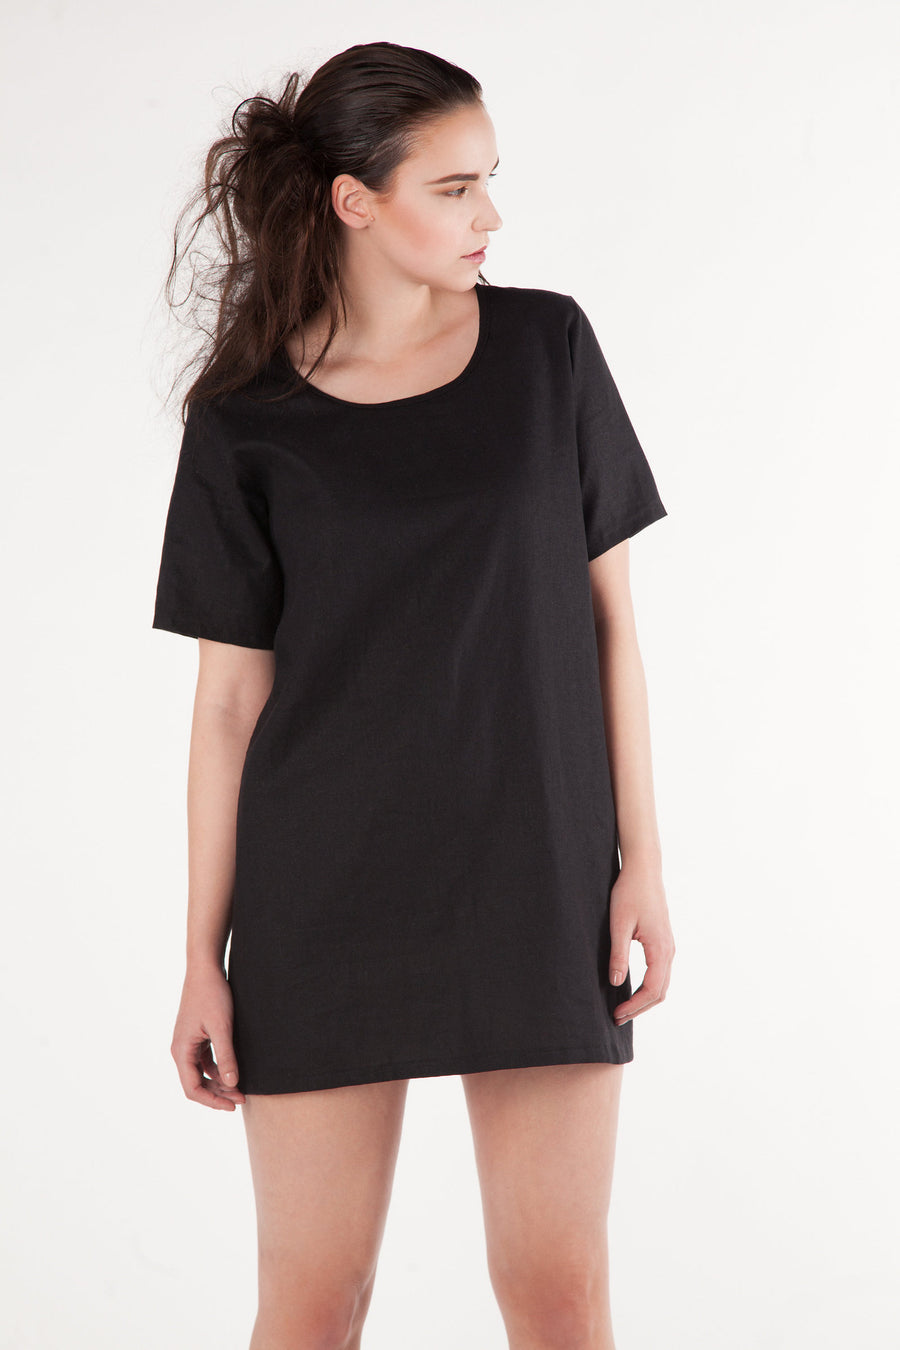 "Short Sleeve Shift Dress - ""Madeson"" - Black - Rebecca Rae Design Inc."